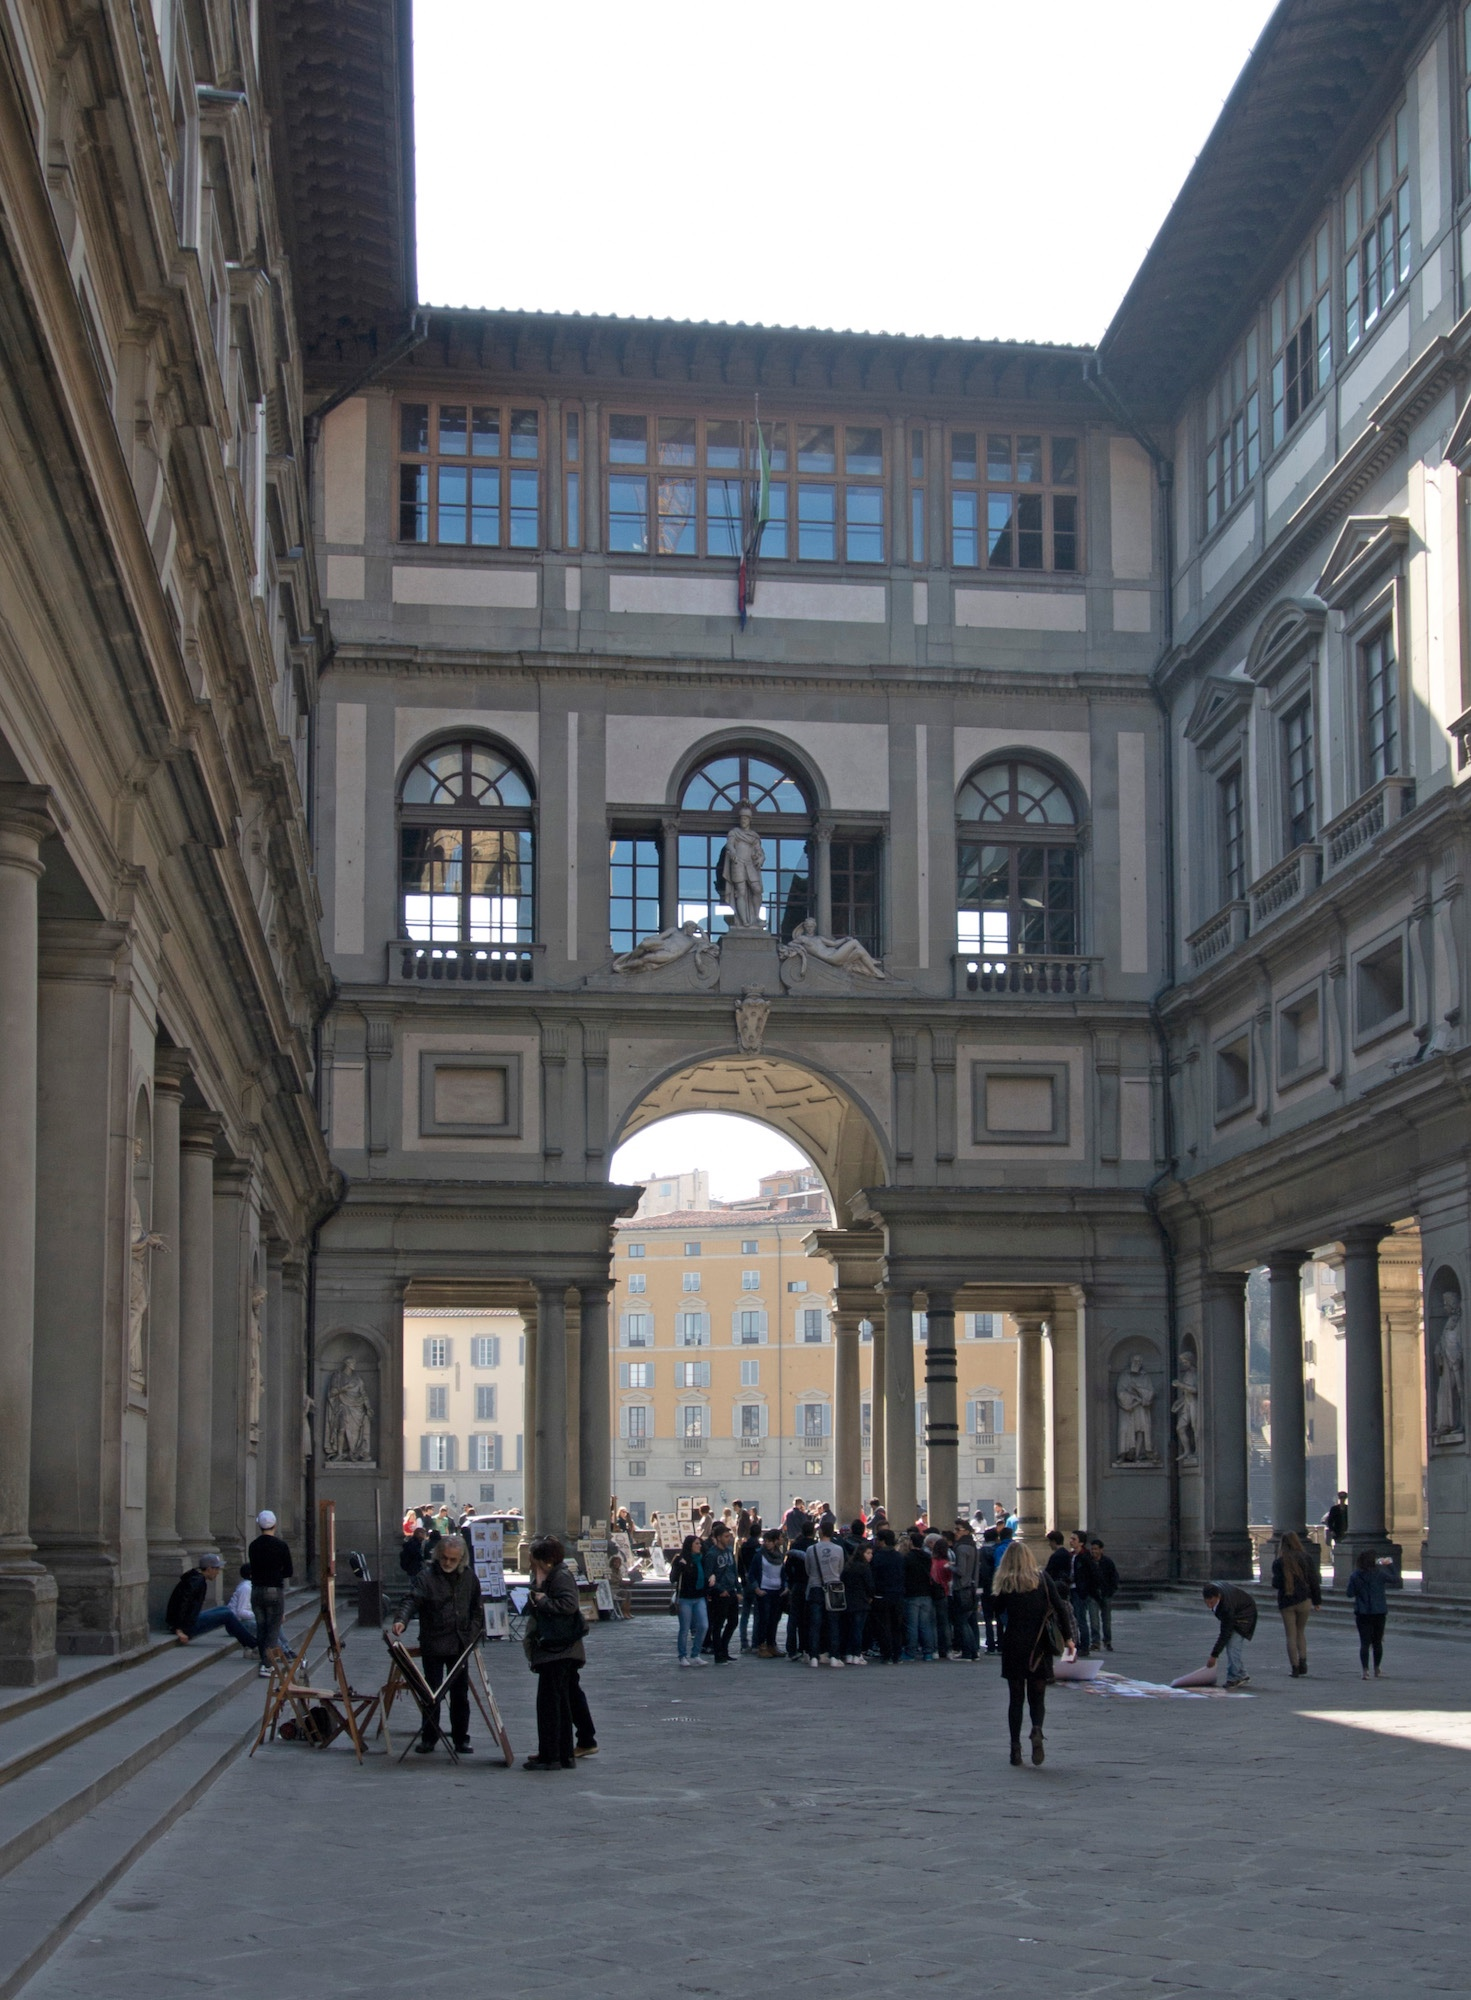 The Piazzale Uffizi, looking towards the Arno. © 2014 Massengale & Co LLC